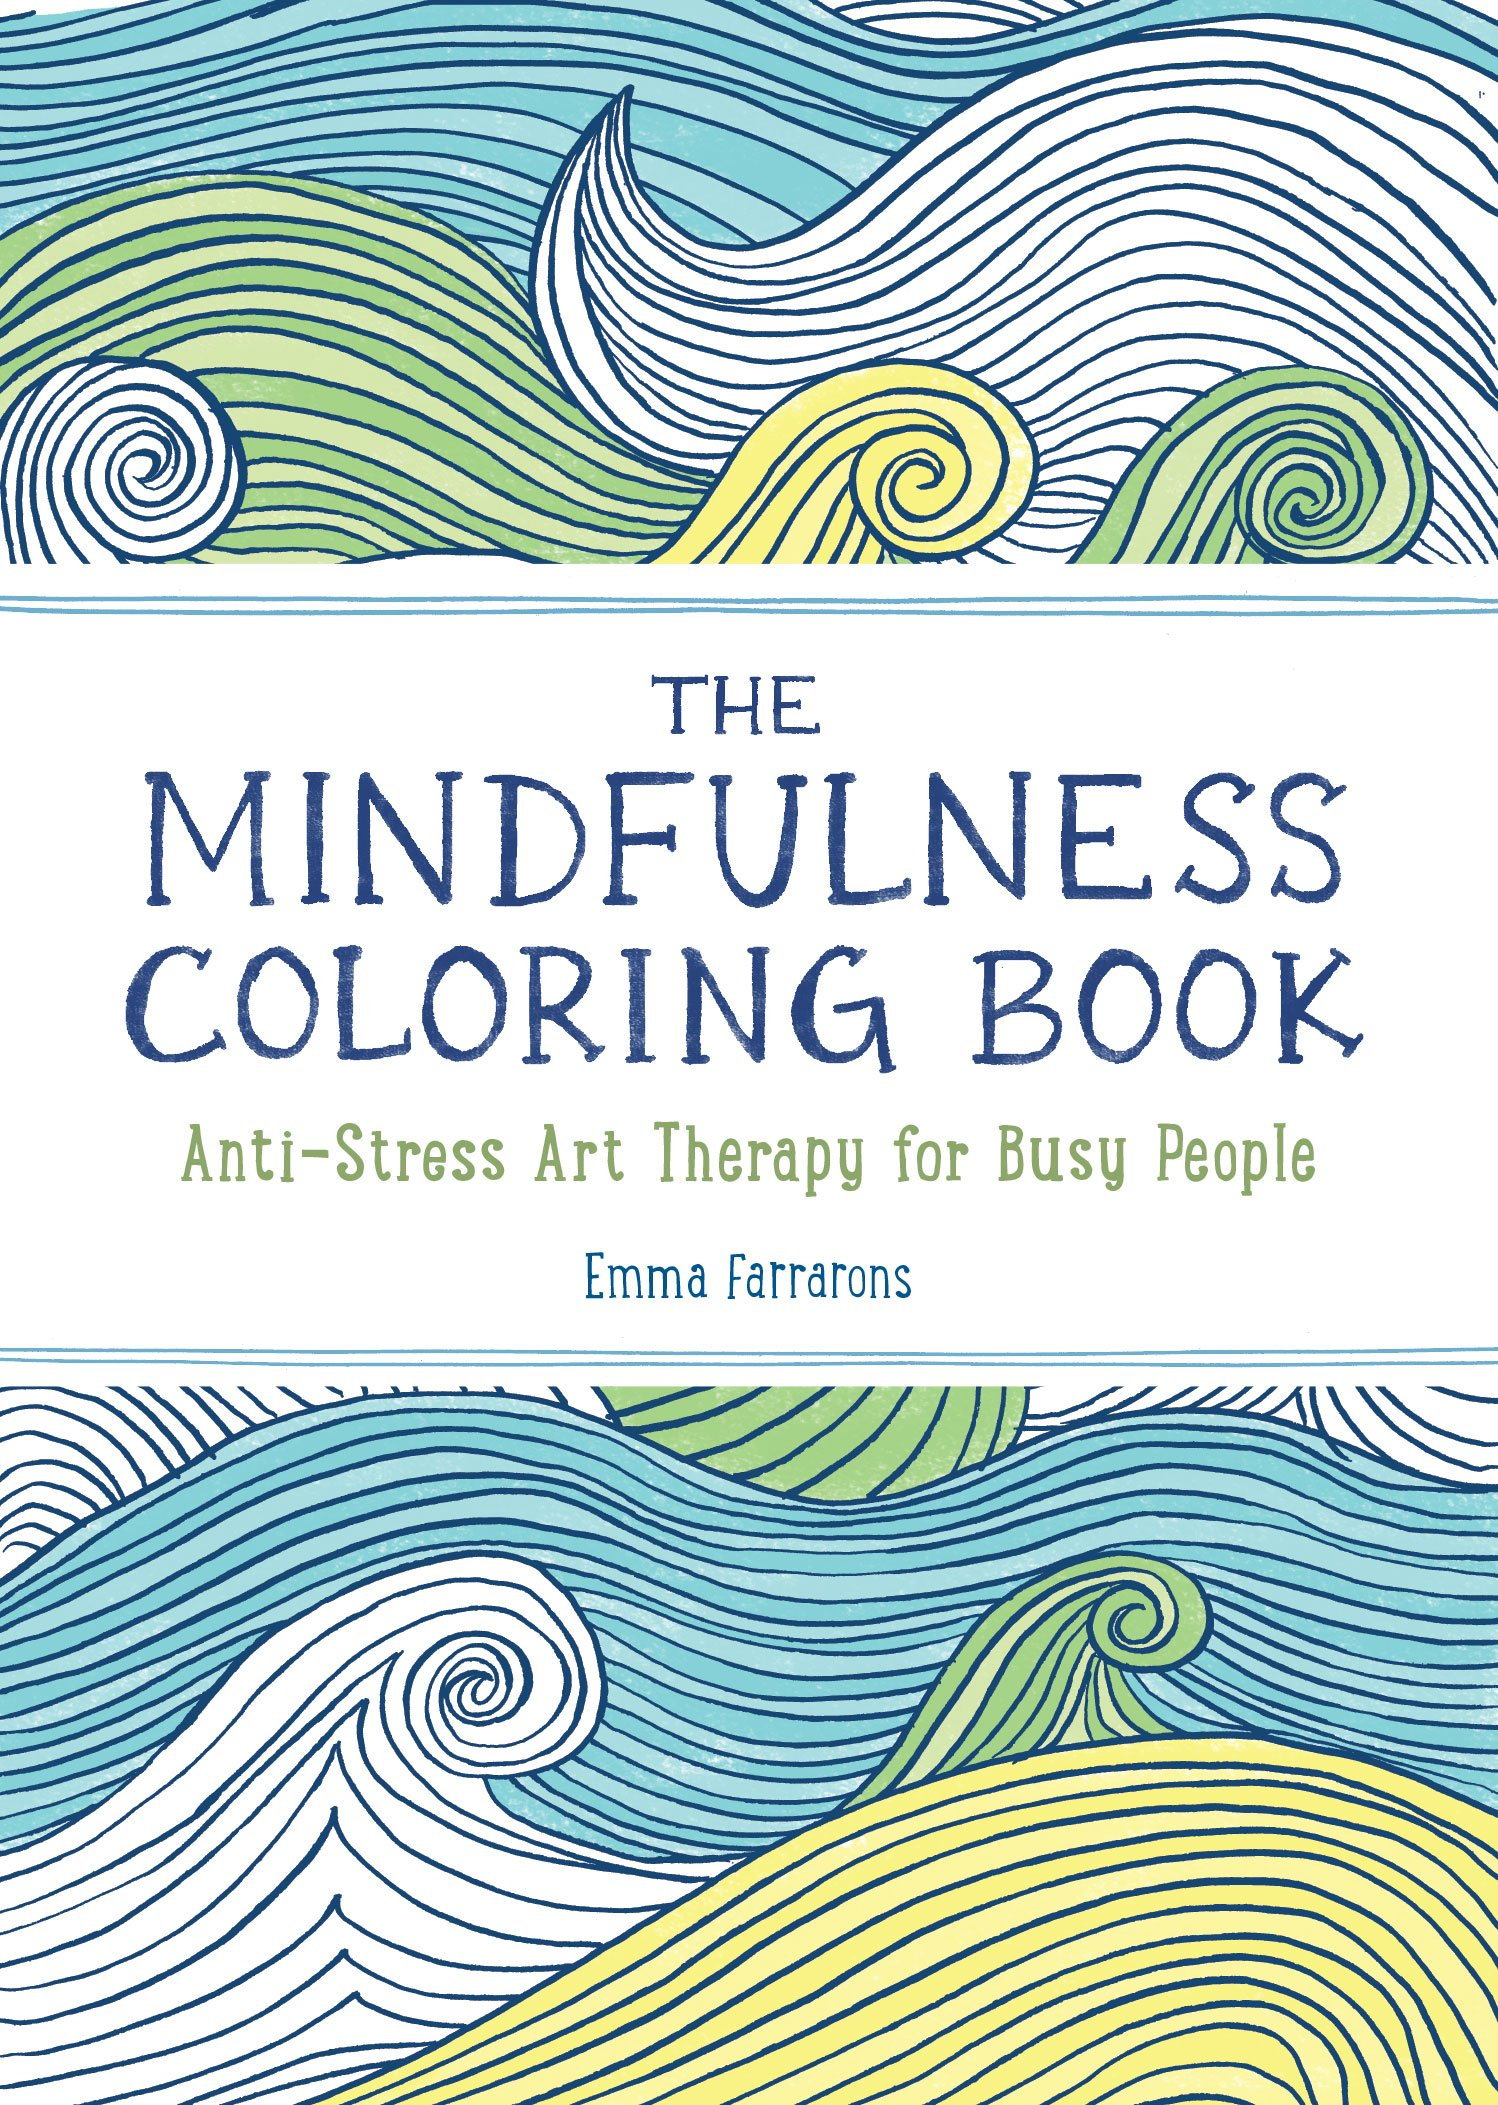 How much is the coloring book for adults - The Mindfulness Coloring Book Anti Stress Art Therapy For Busy People The Mindfulness Coloring Series Emma Farrarons 9781615192823 Amazon Com Books